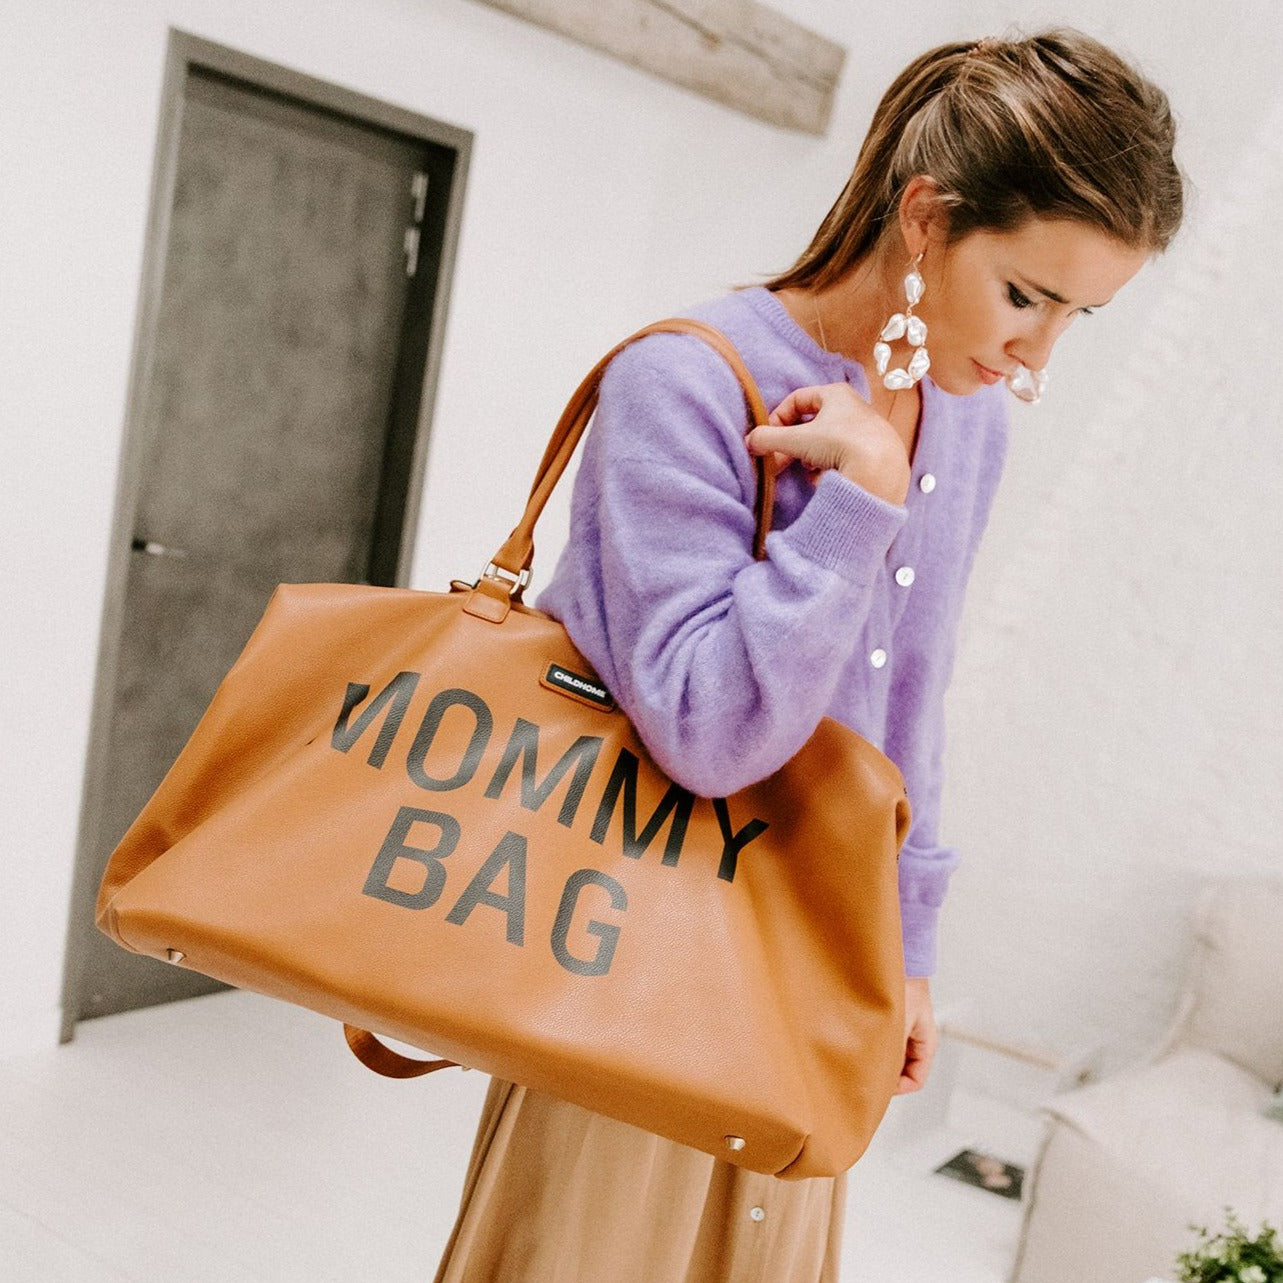 Verzorgingstas Childhome - Mommybag leatherlook